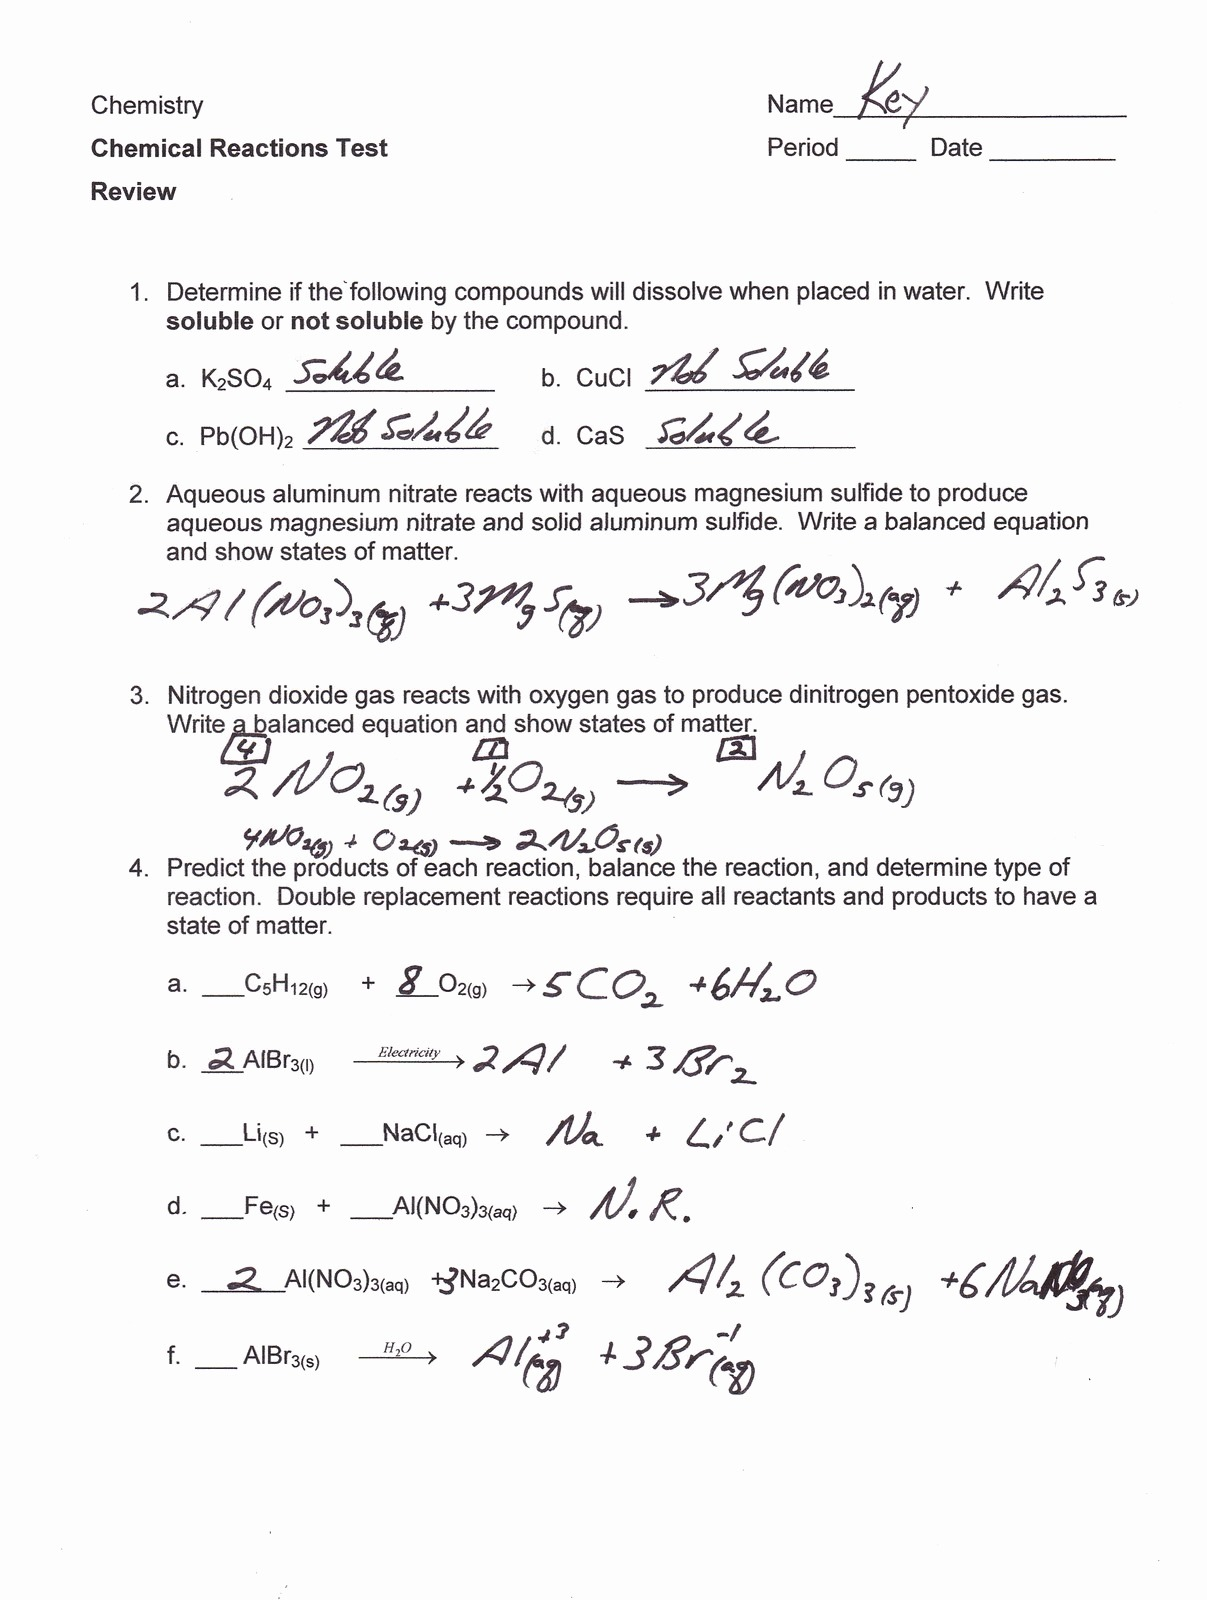 Worksheet 5 Double Replacement Reactions Free Worksheets